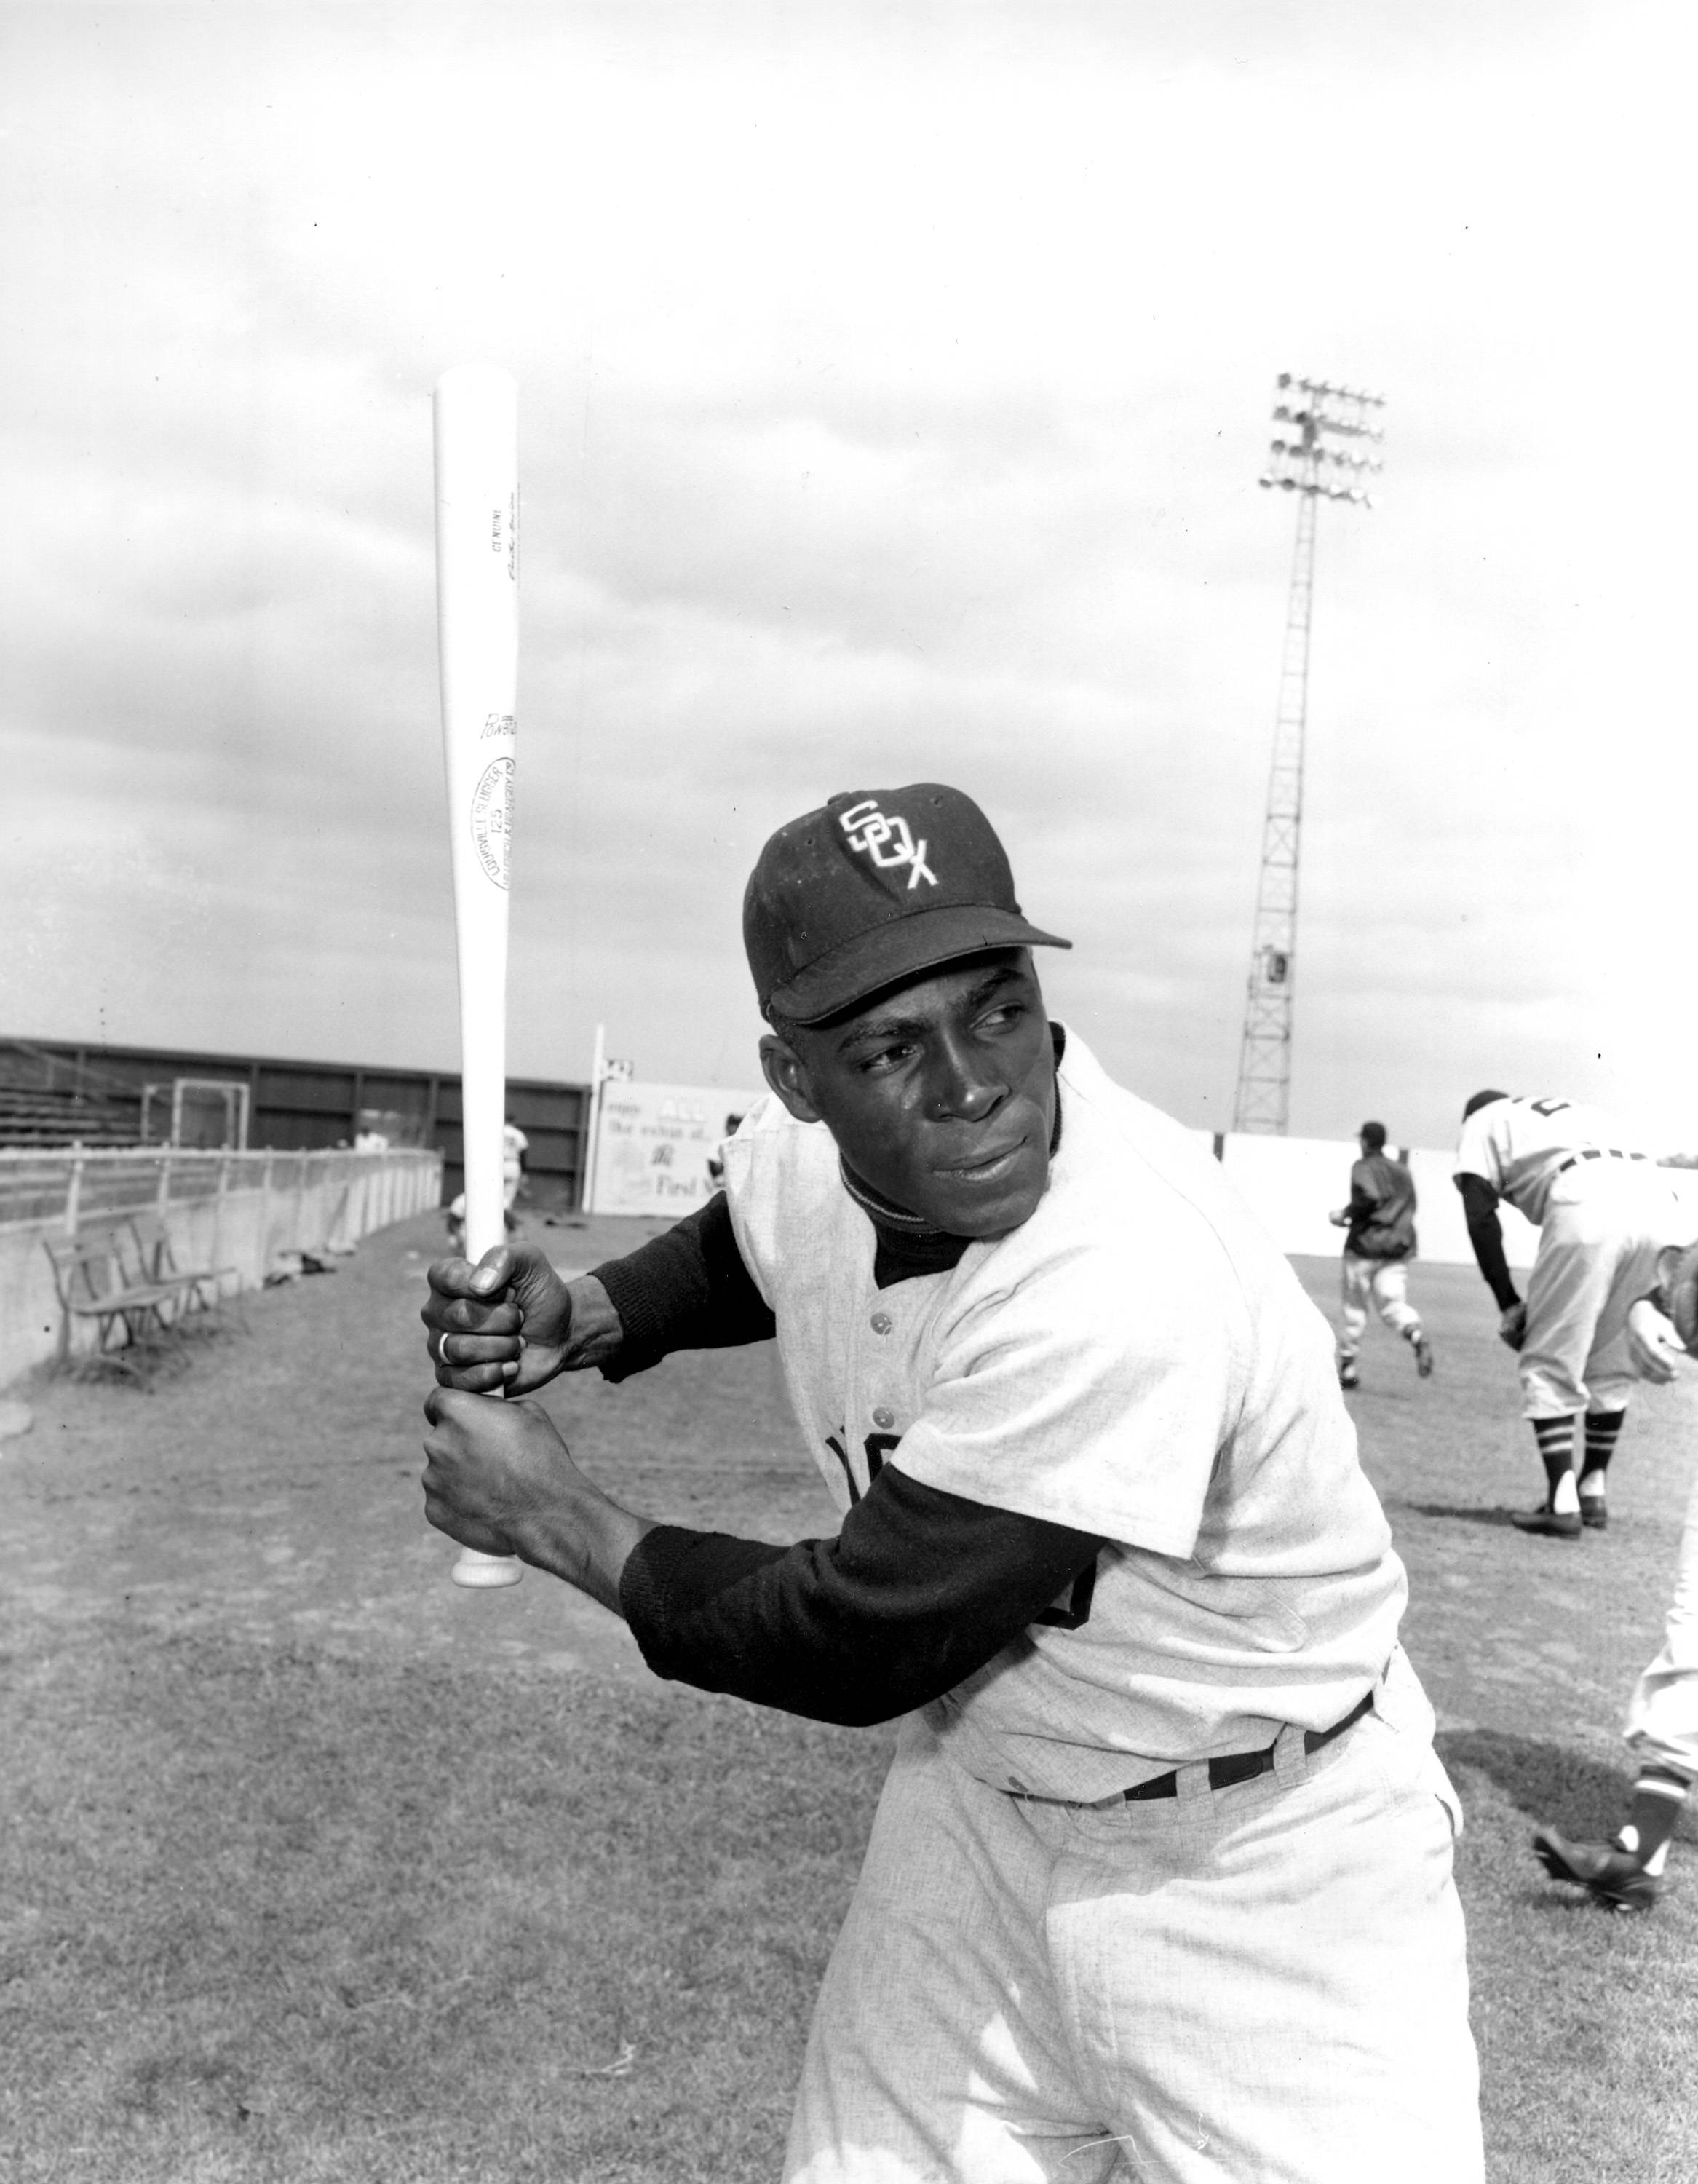 "FILE — In a March 9, 1957 file photo, Chicago White Sox outfielder Orestes ""Minnie"" Minoso poses in batting position at Al Lopez Field in Tampa, Fla. Major league baseball's first black player in Chicago, Minnie Minoso, has died. The Cook County medical examiner confirmed his death Sunday, March 1, 2015. There is some question about his age but the White Sox say he was 92."